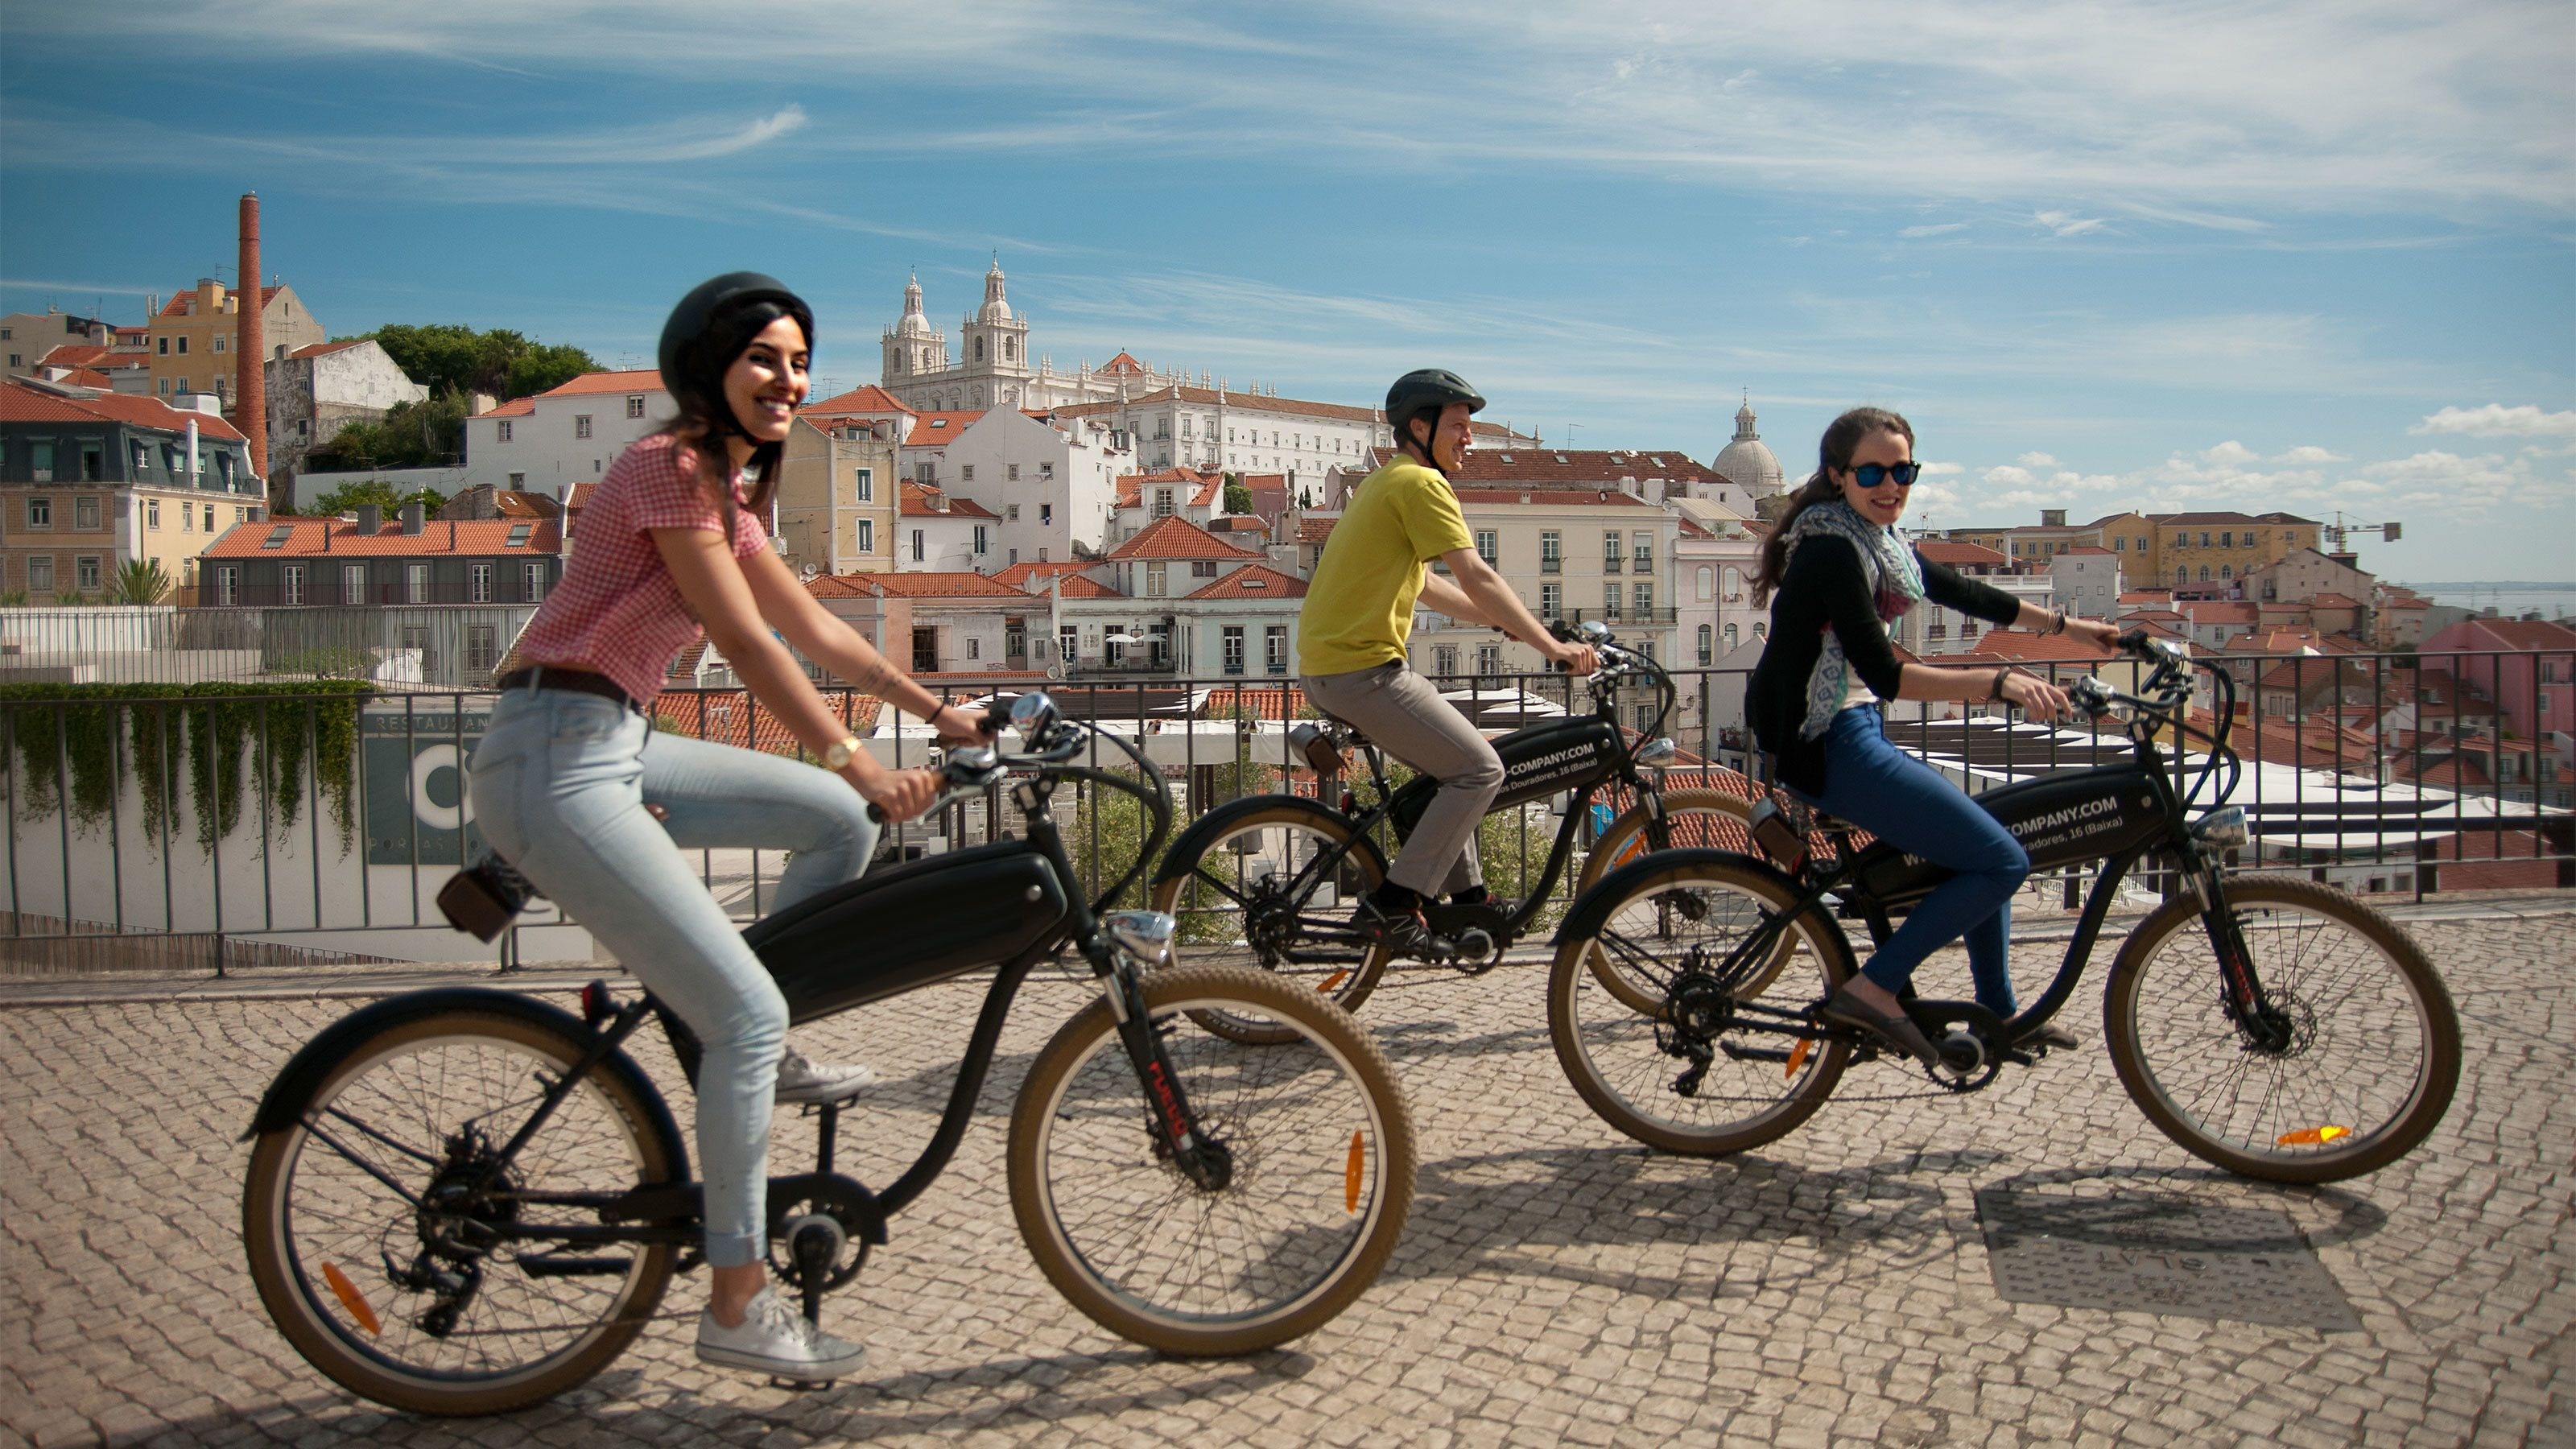 Bicycling group on a cobblestone street in Lisbon